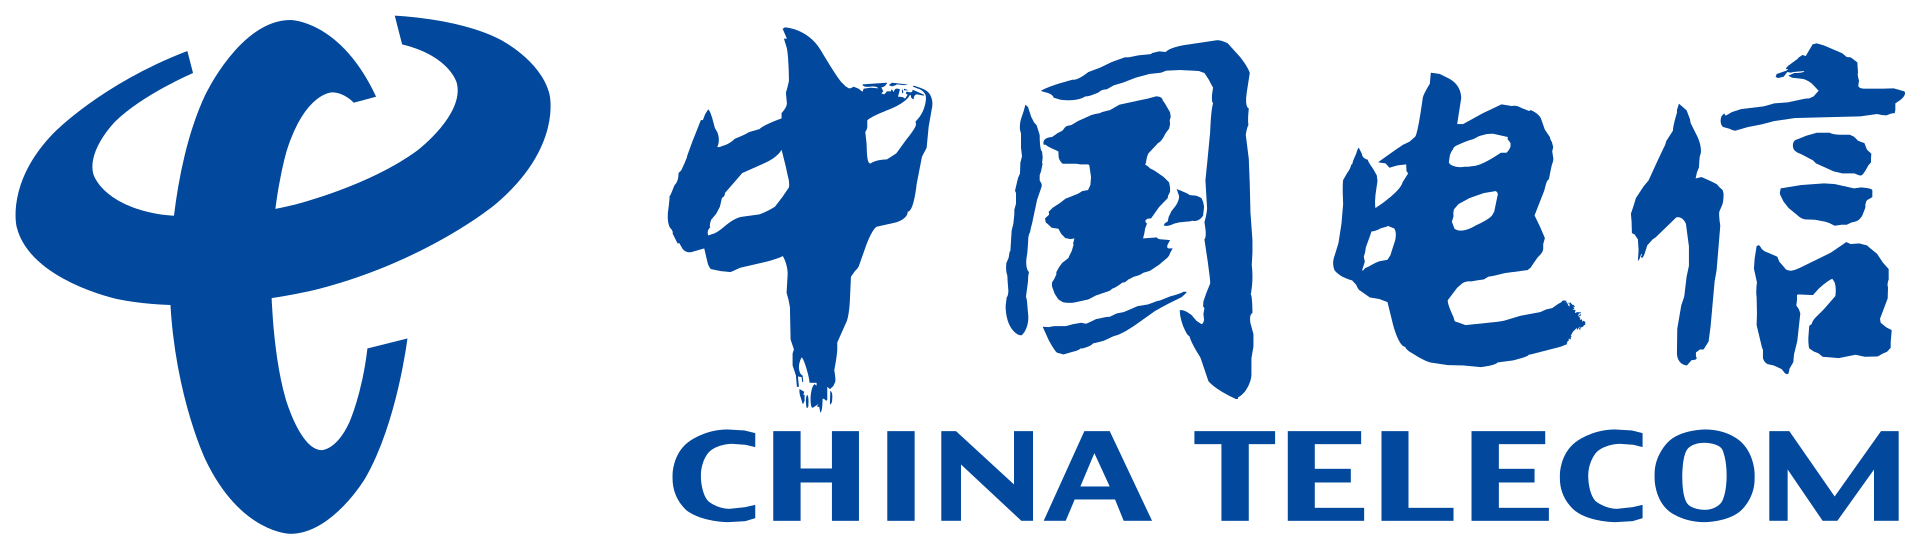 china telecom - top 10 telecommunications companies in the world